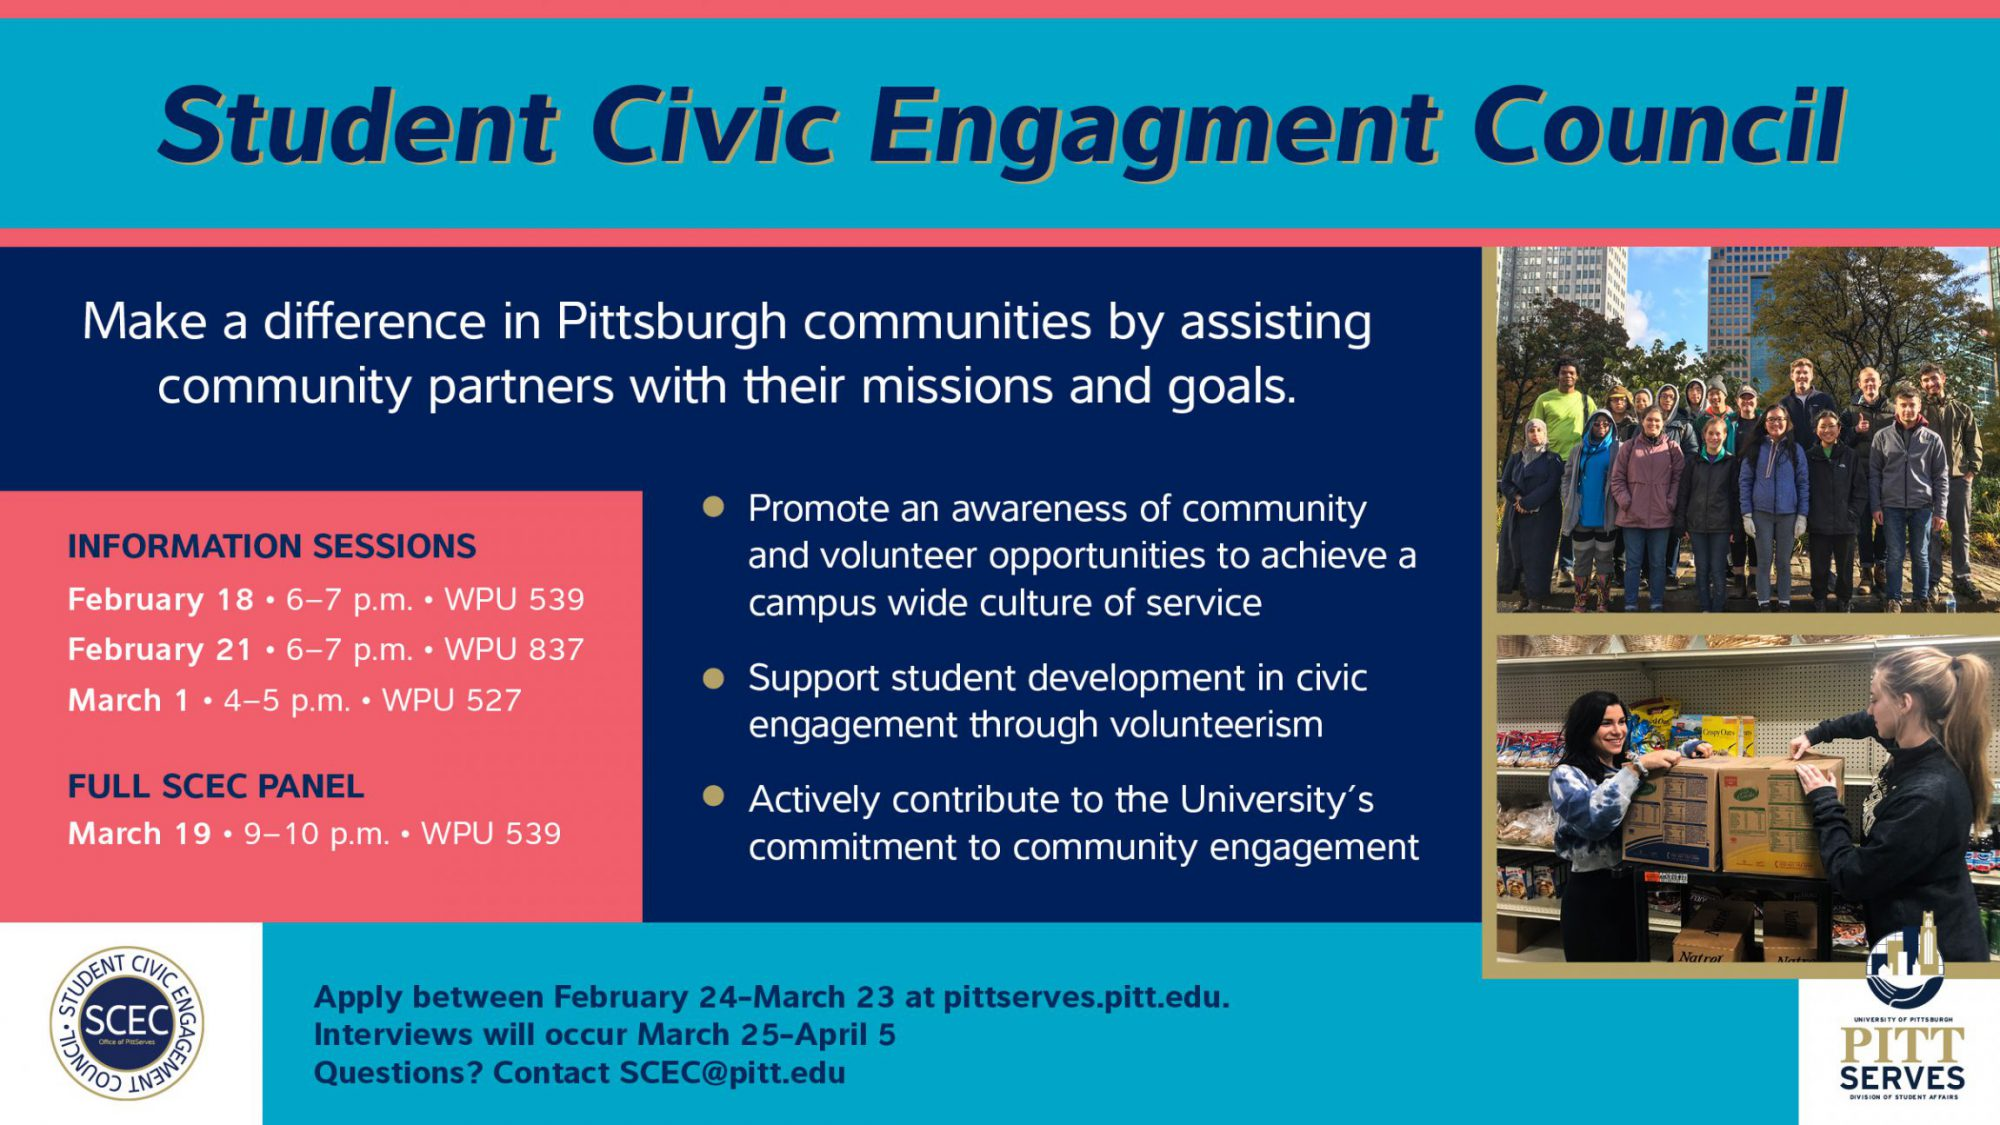 Student Civic Engagement Council